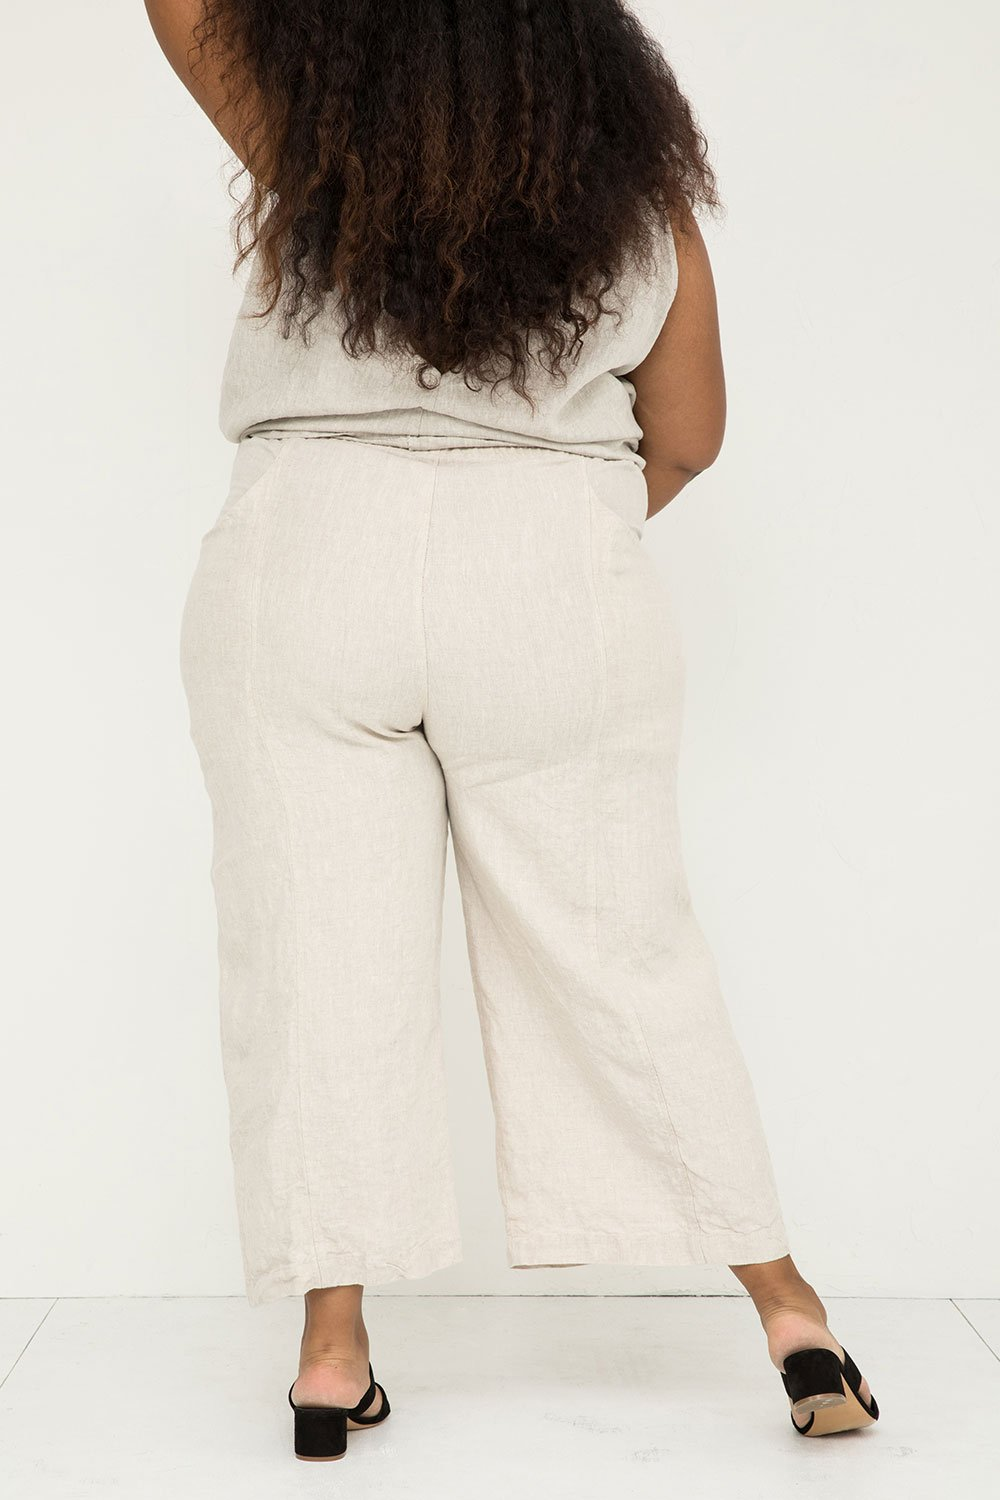 Clyde Culotte in Midweight Linen Flax - Alex-22 Regular